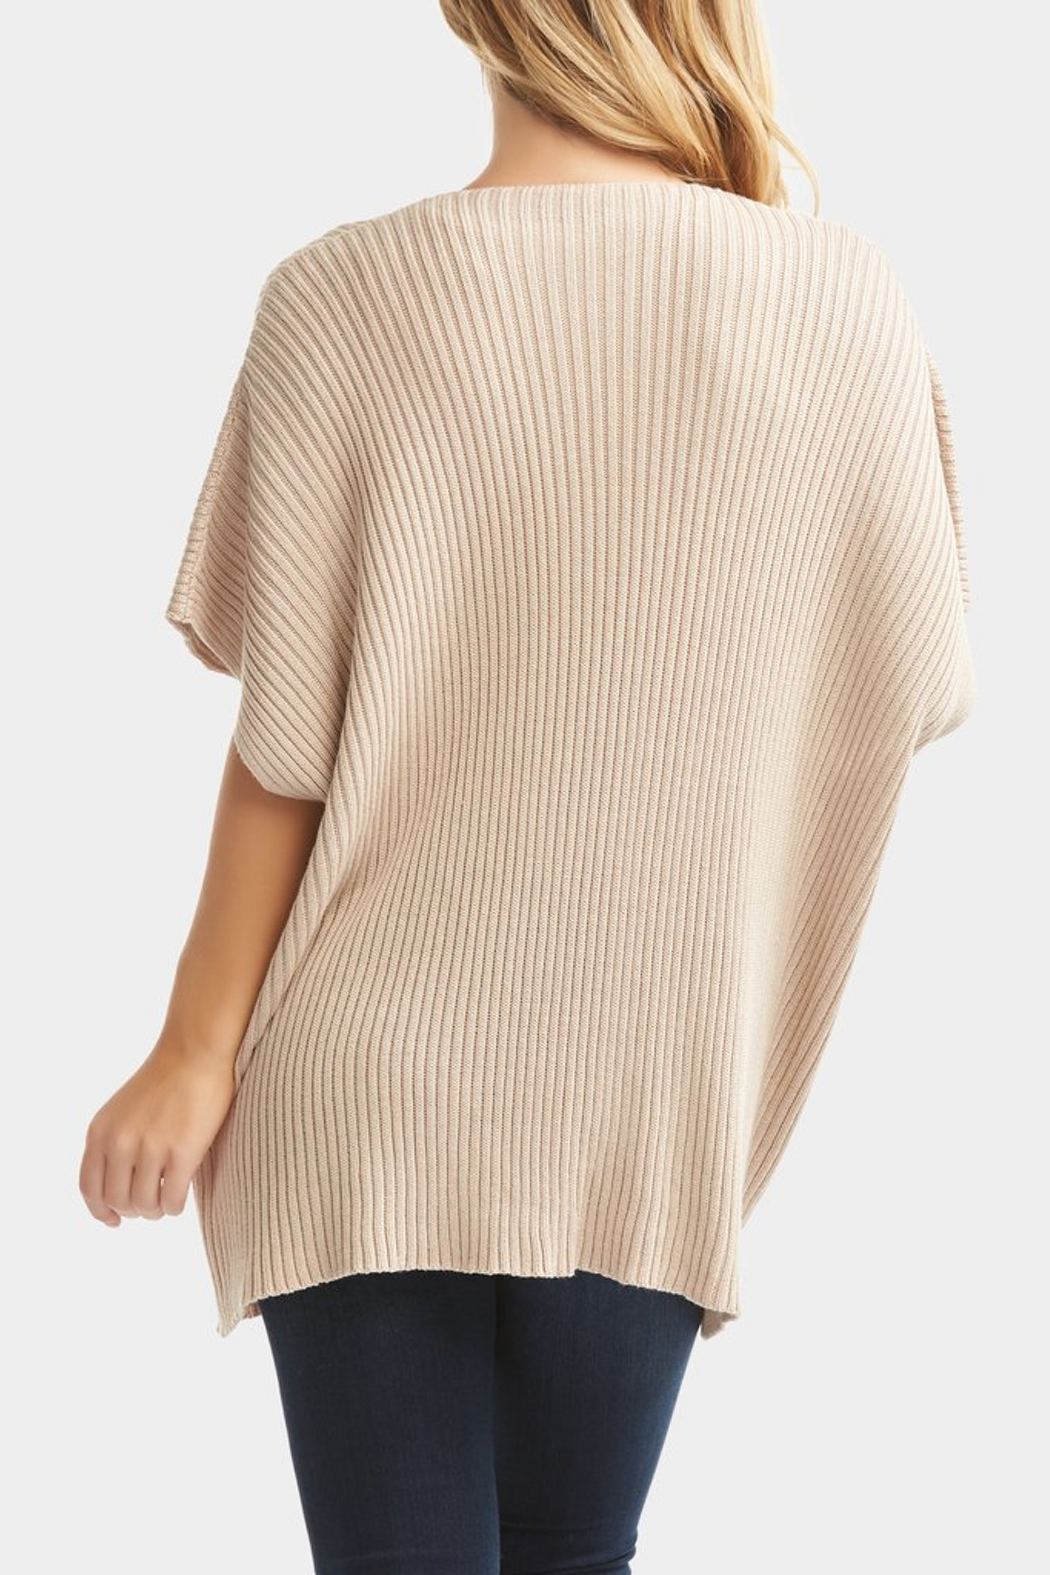 Tart Collections Taja Wrap Top - Back Cropped Image